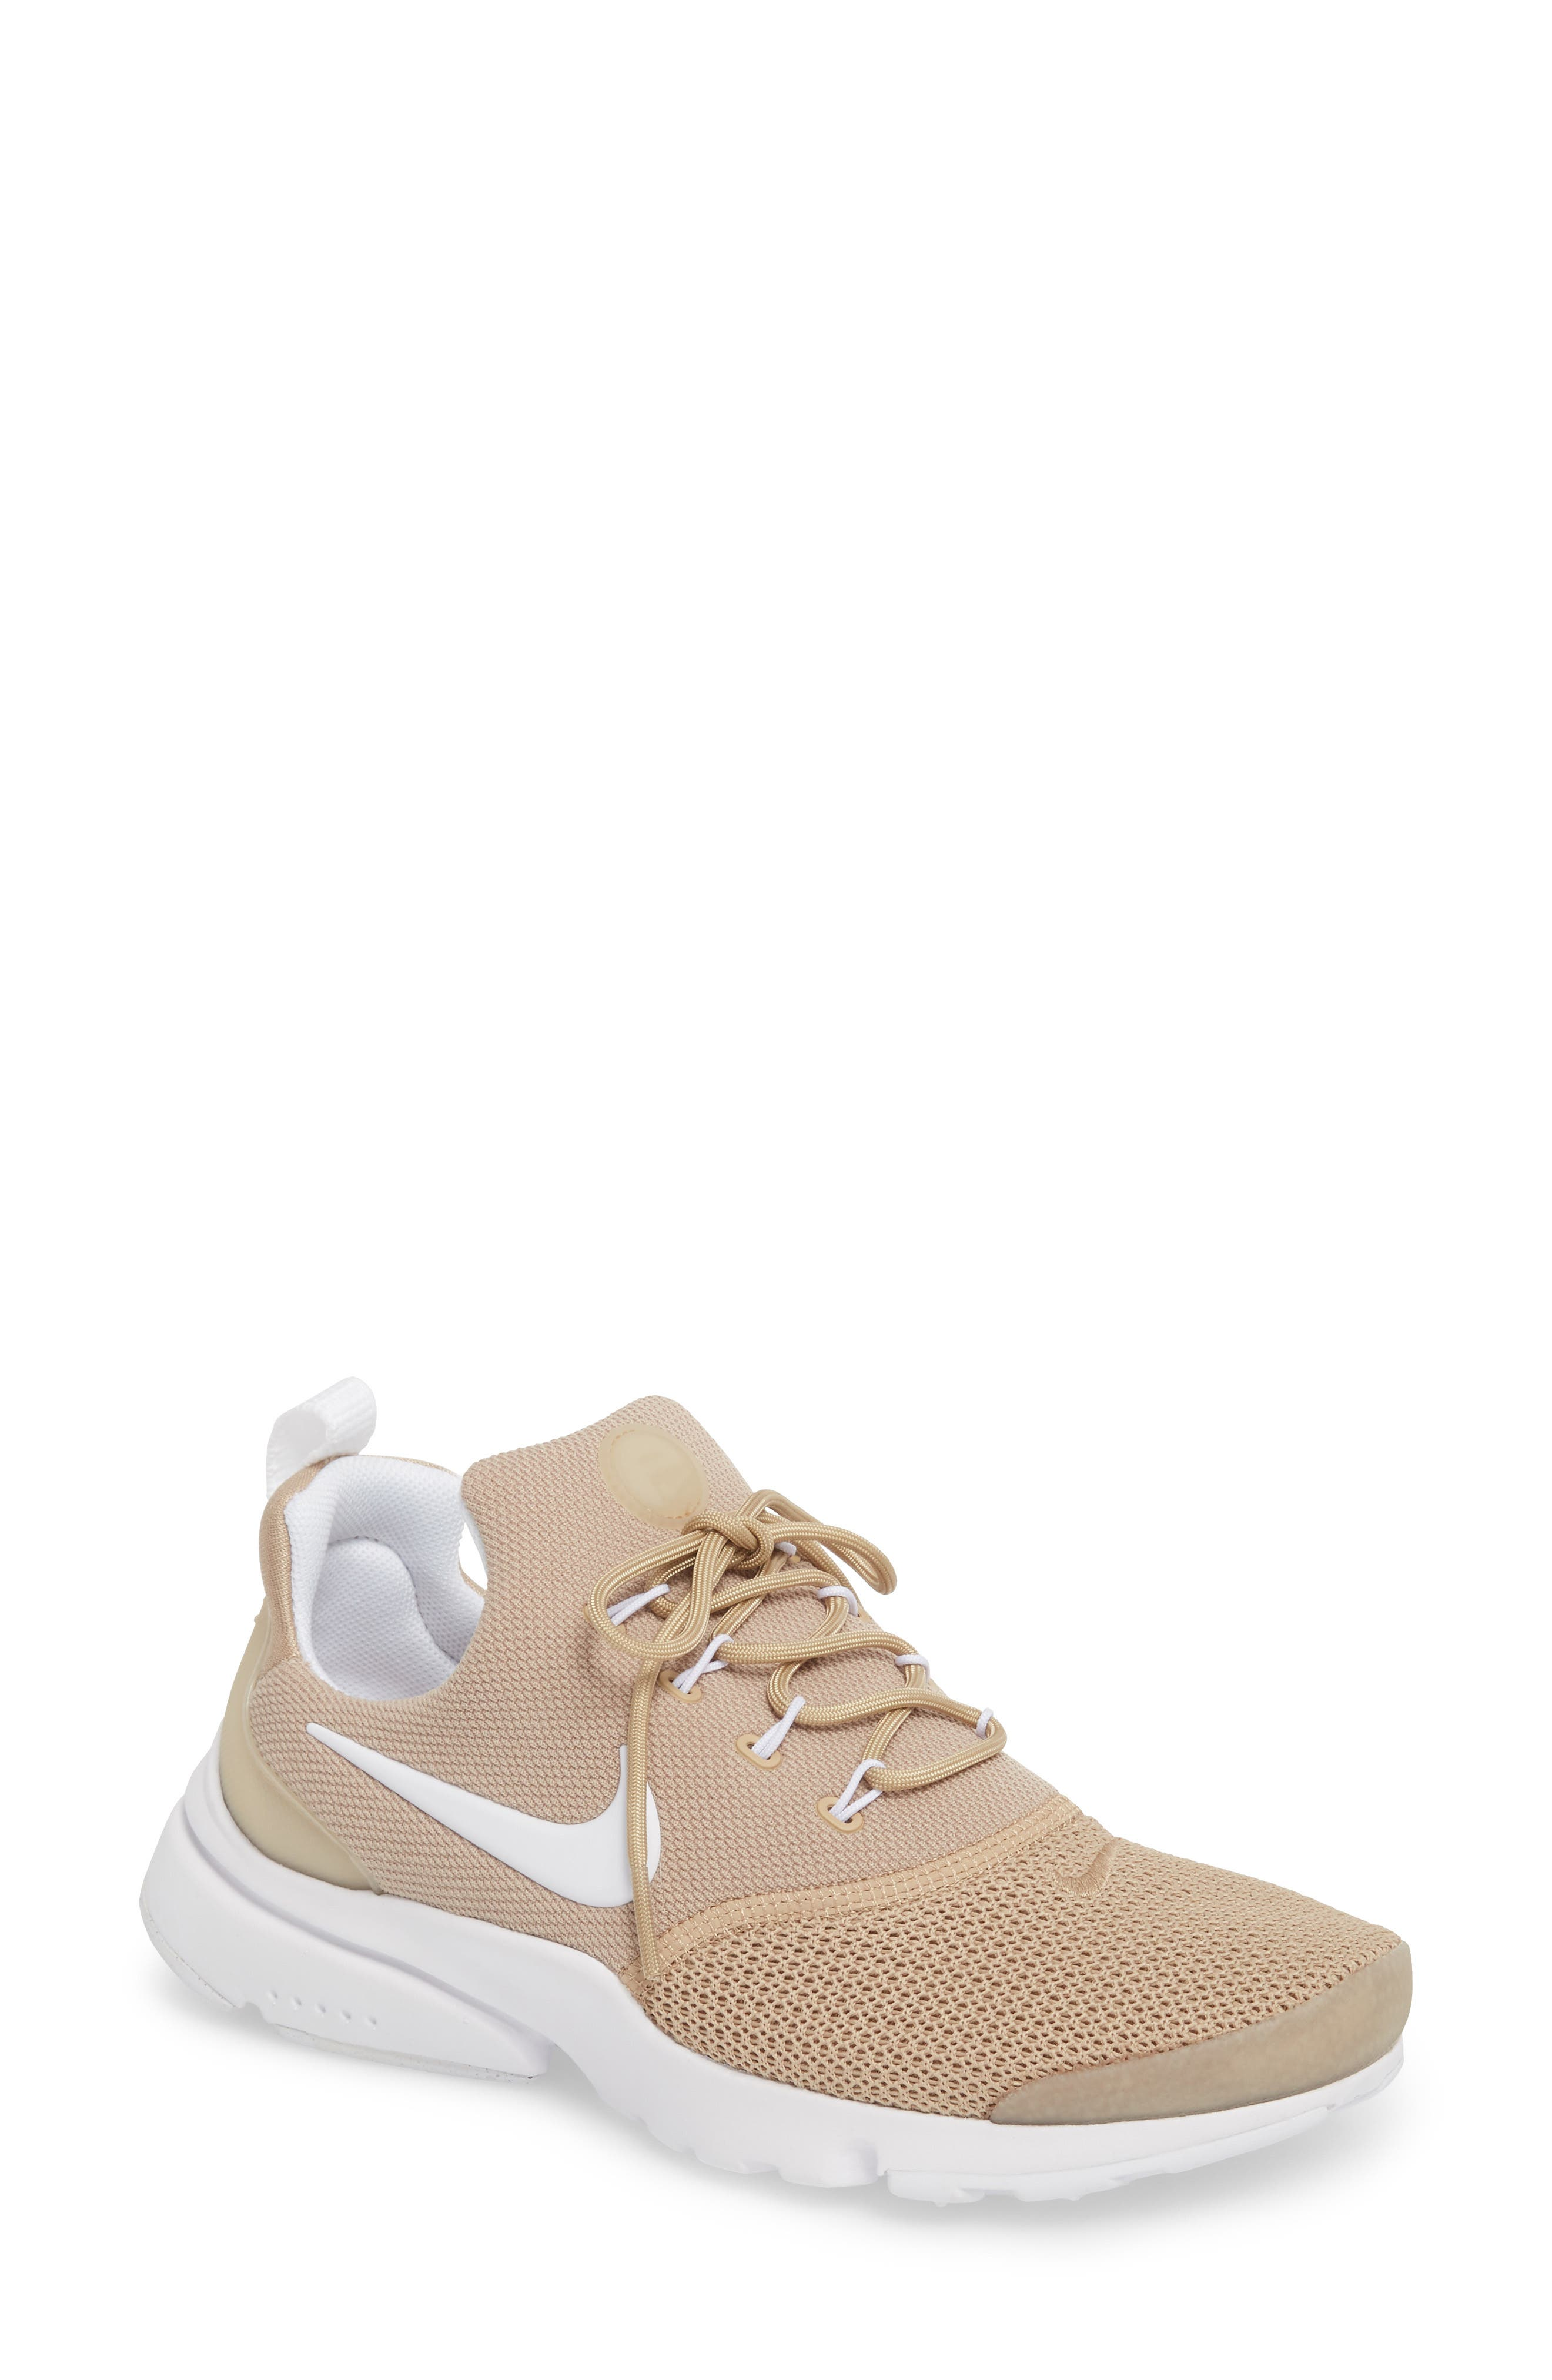 Presto Fly Sneaker,                         Main,                         color, Sand/ White